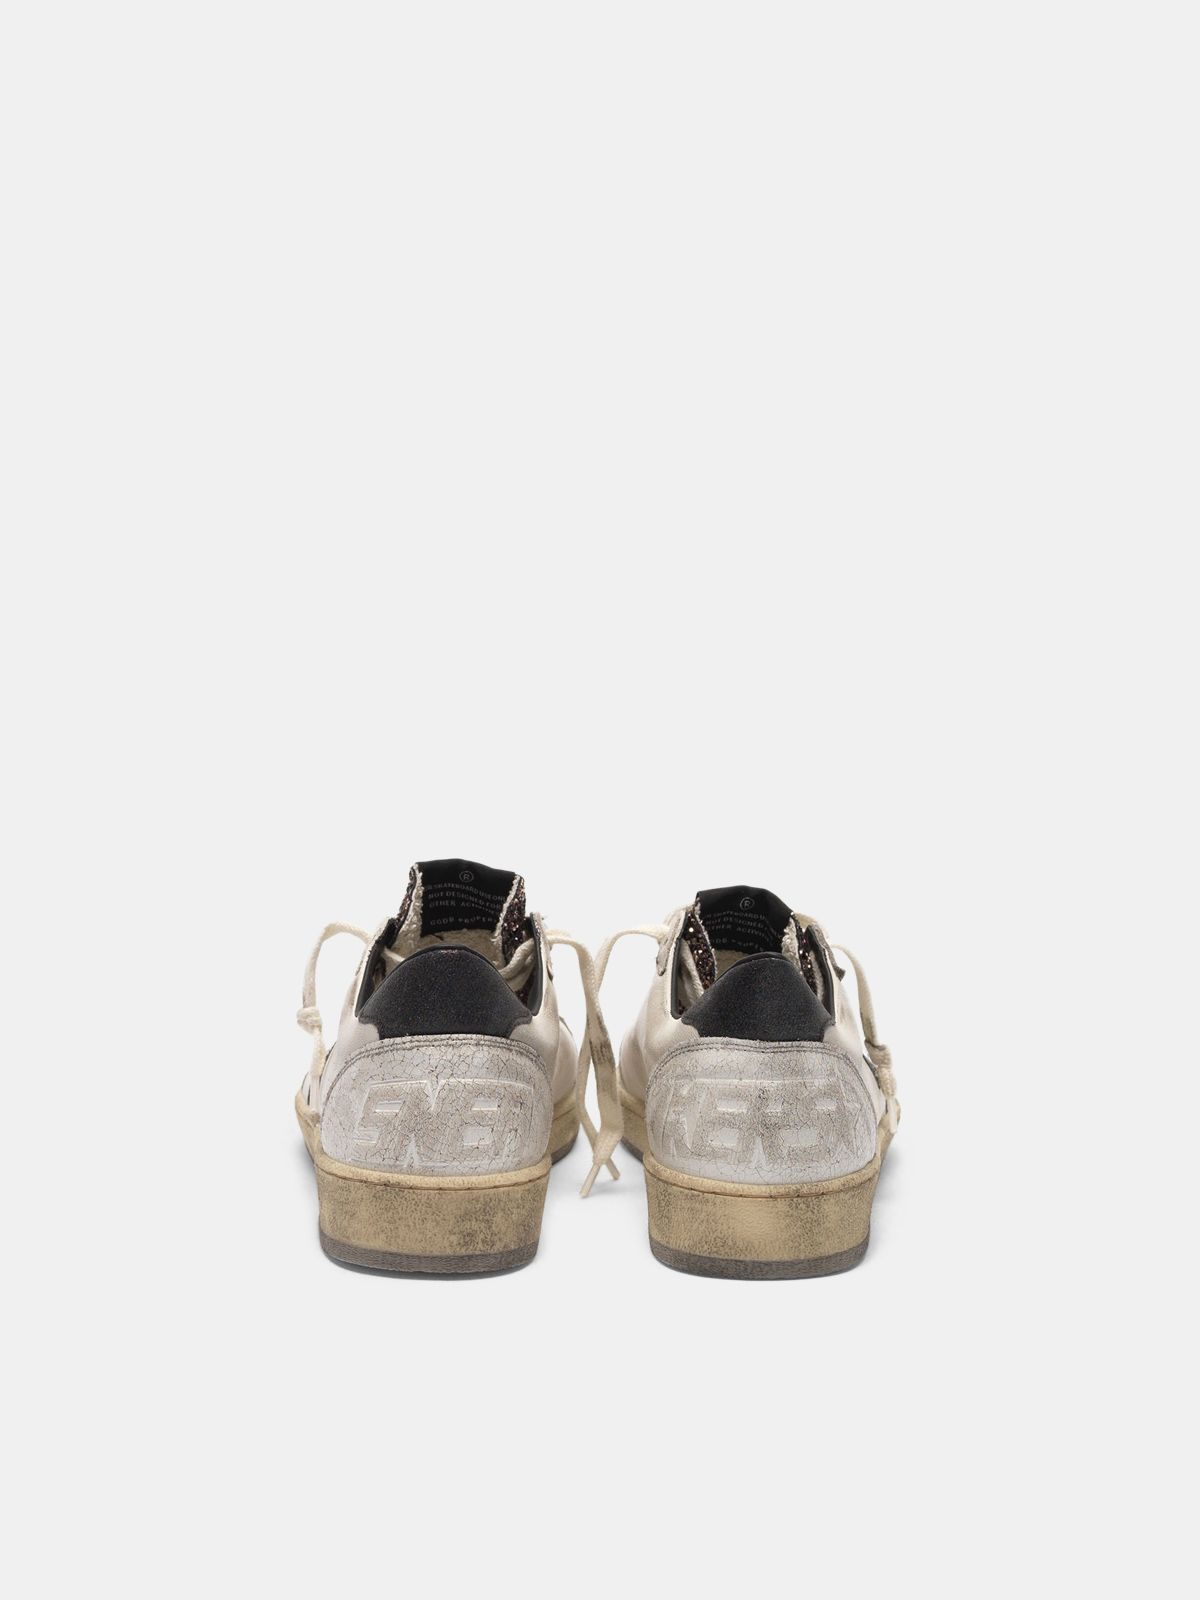 Golden Goose - Ball Star sneakers with glitter tongue in